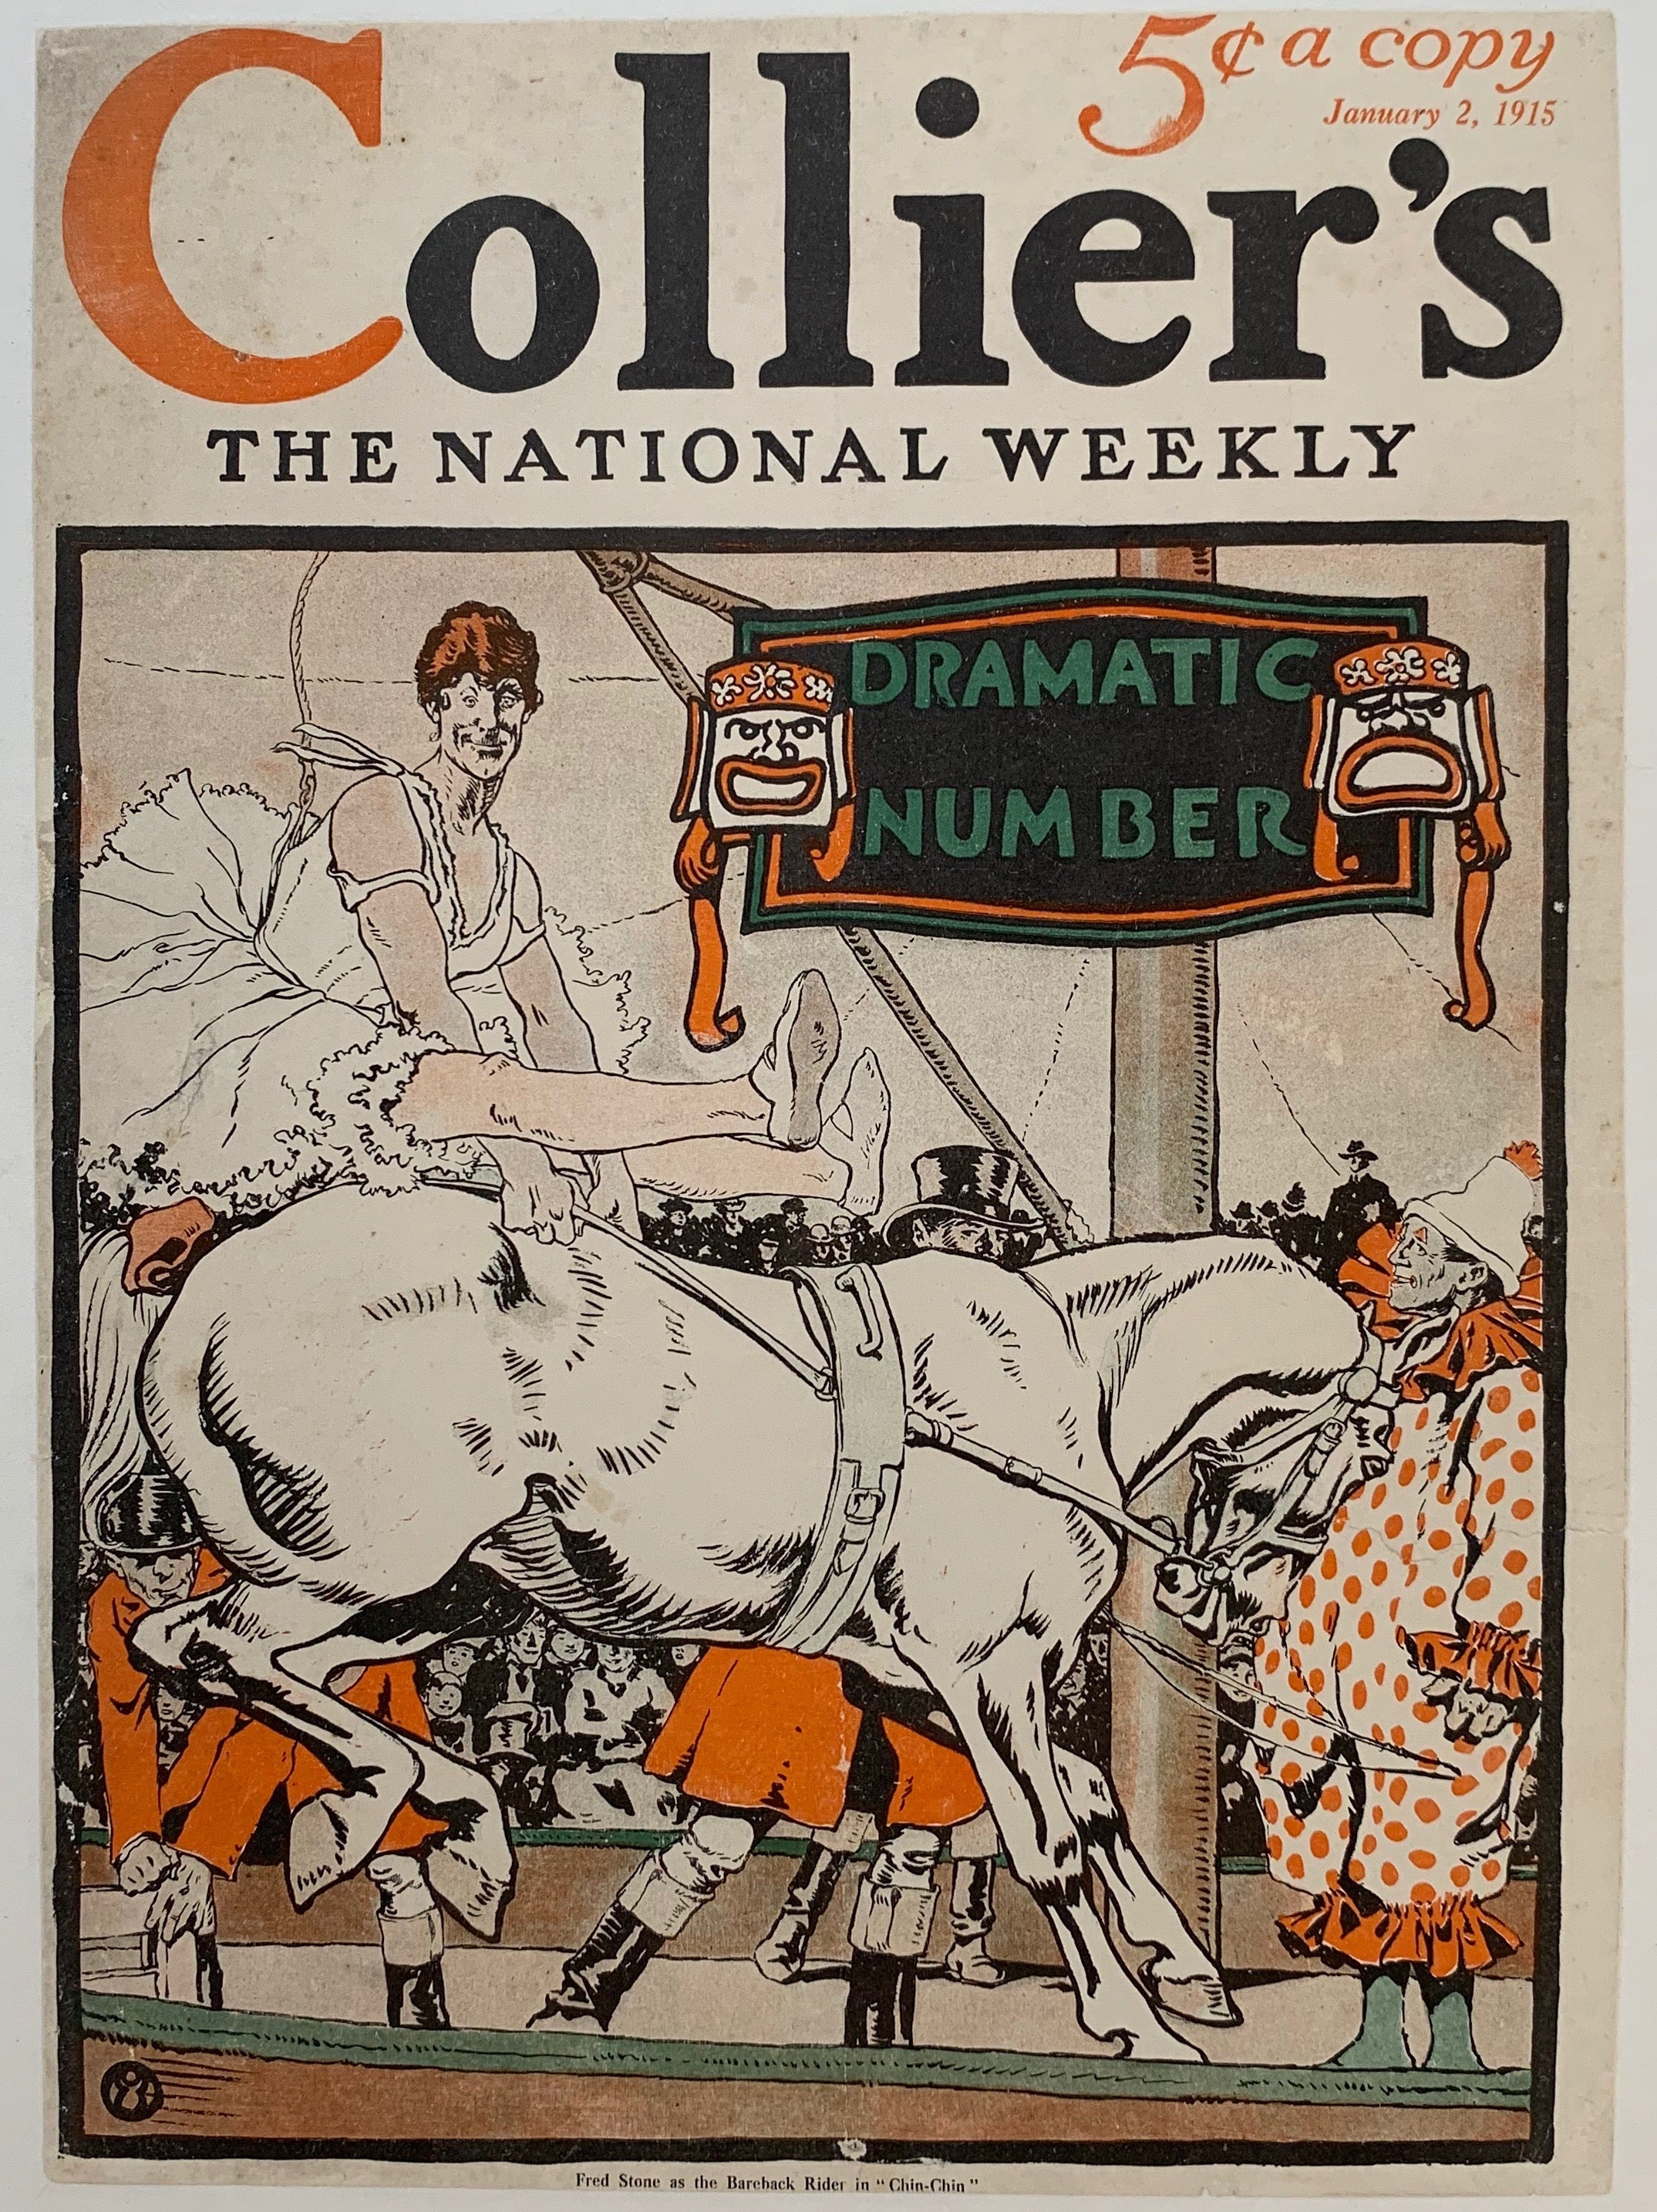 Collier's The National Weekly Print